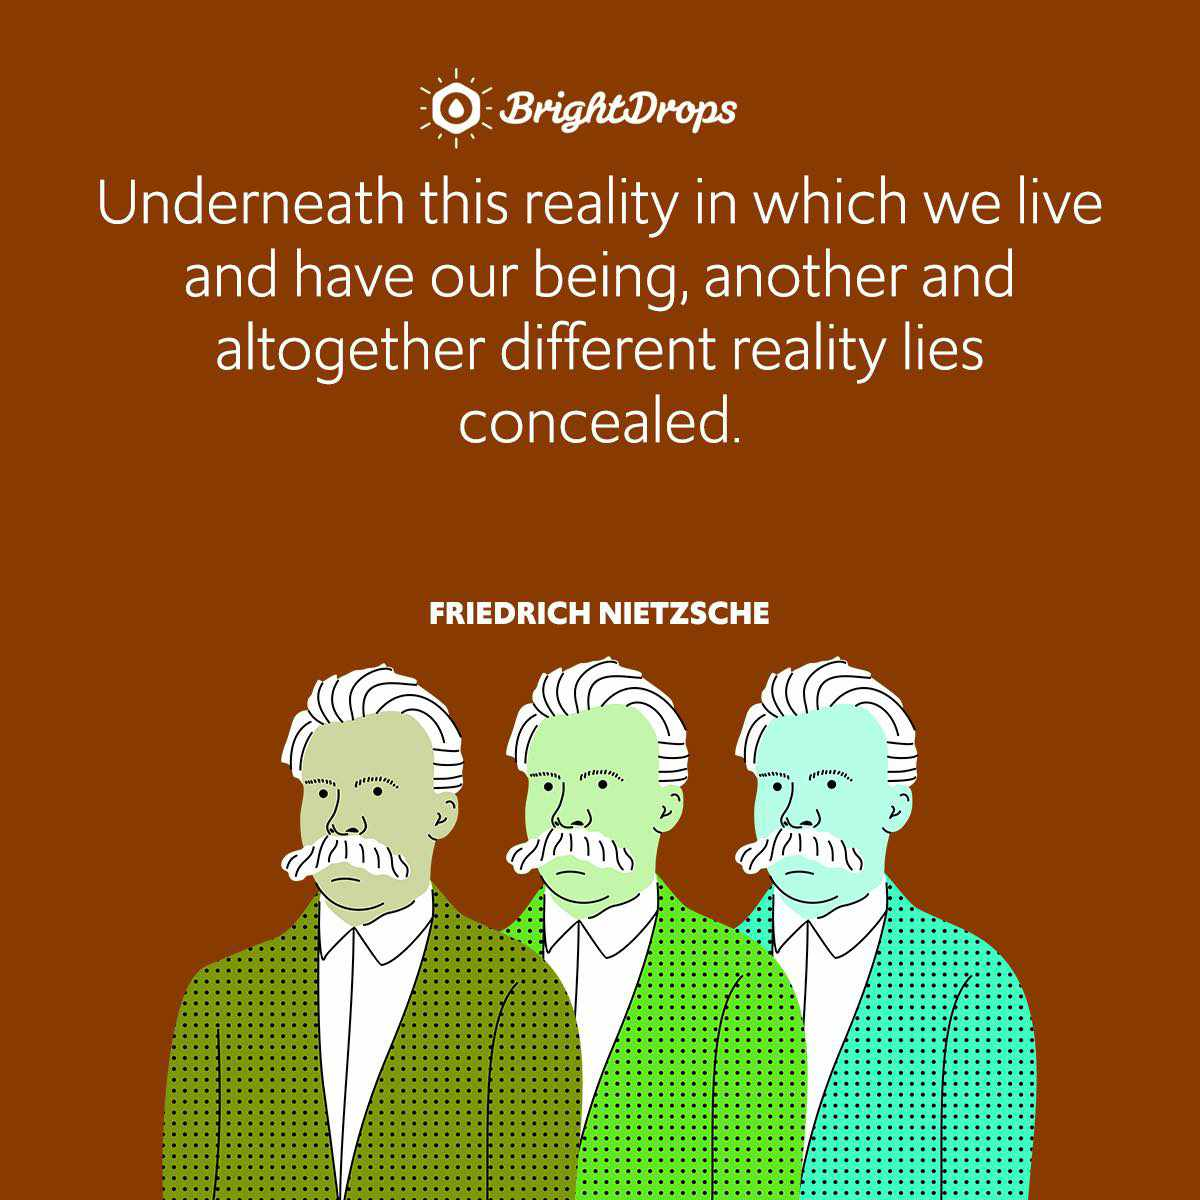 Underneath this reality in which we live and have our being, another and altogether different reality lies concealed.